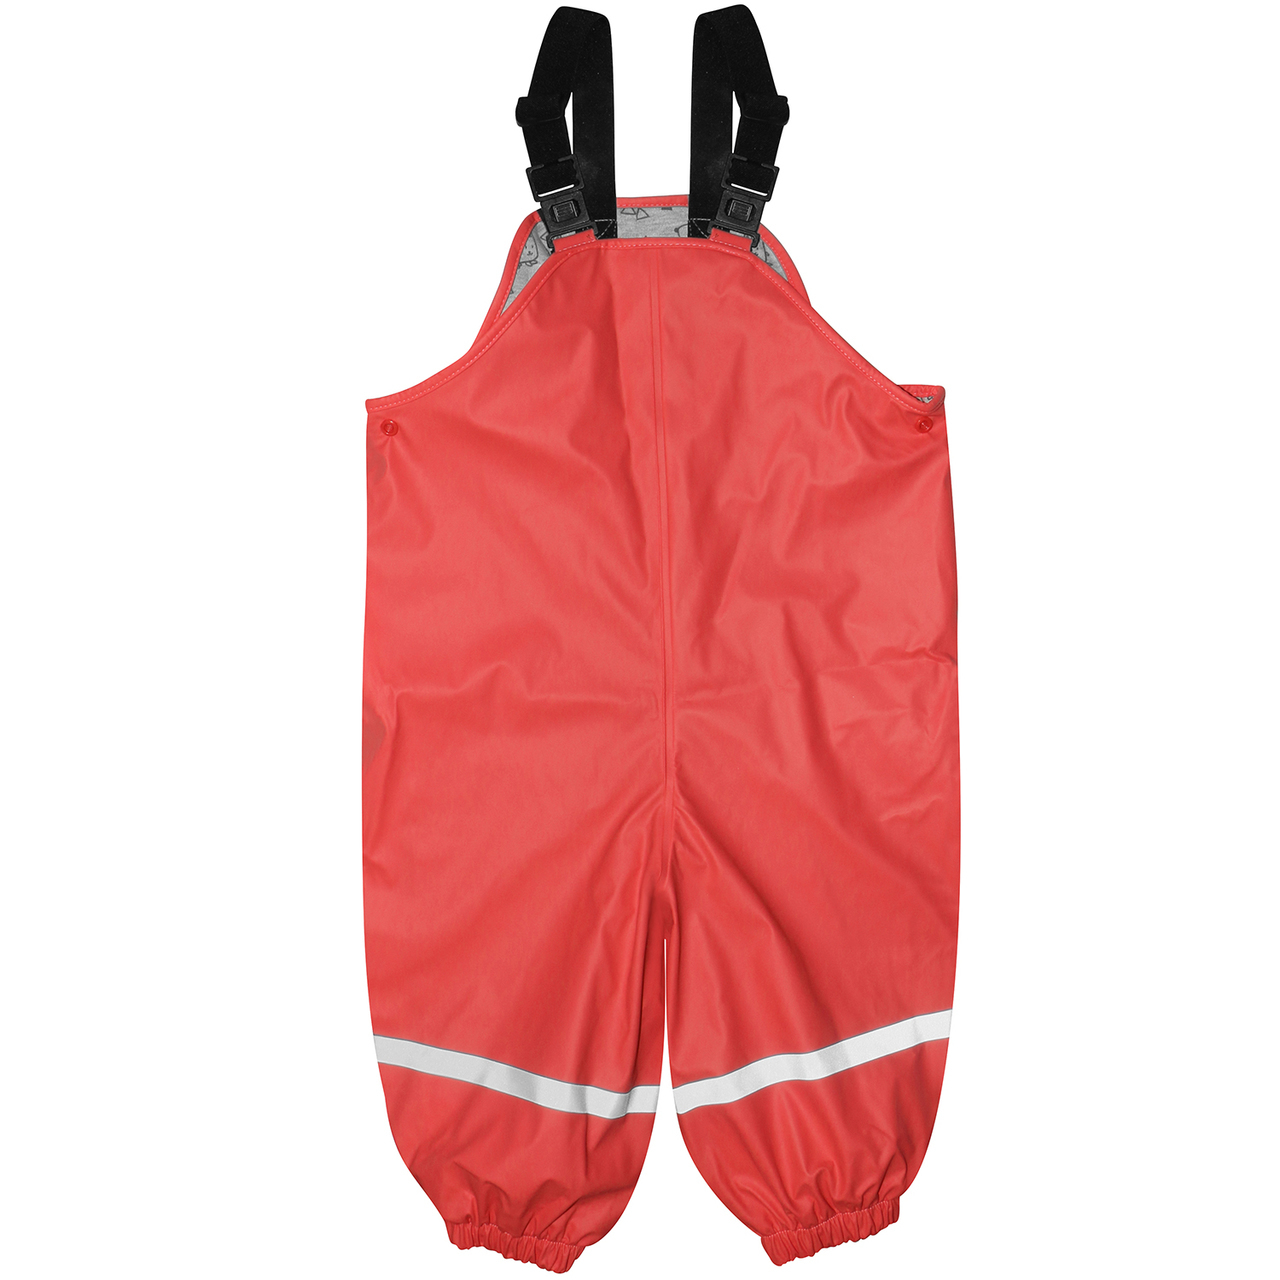 Silly Billyz Waterproof Overalls - Red (2-3 Yrs) image